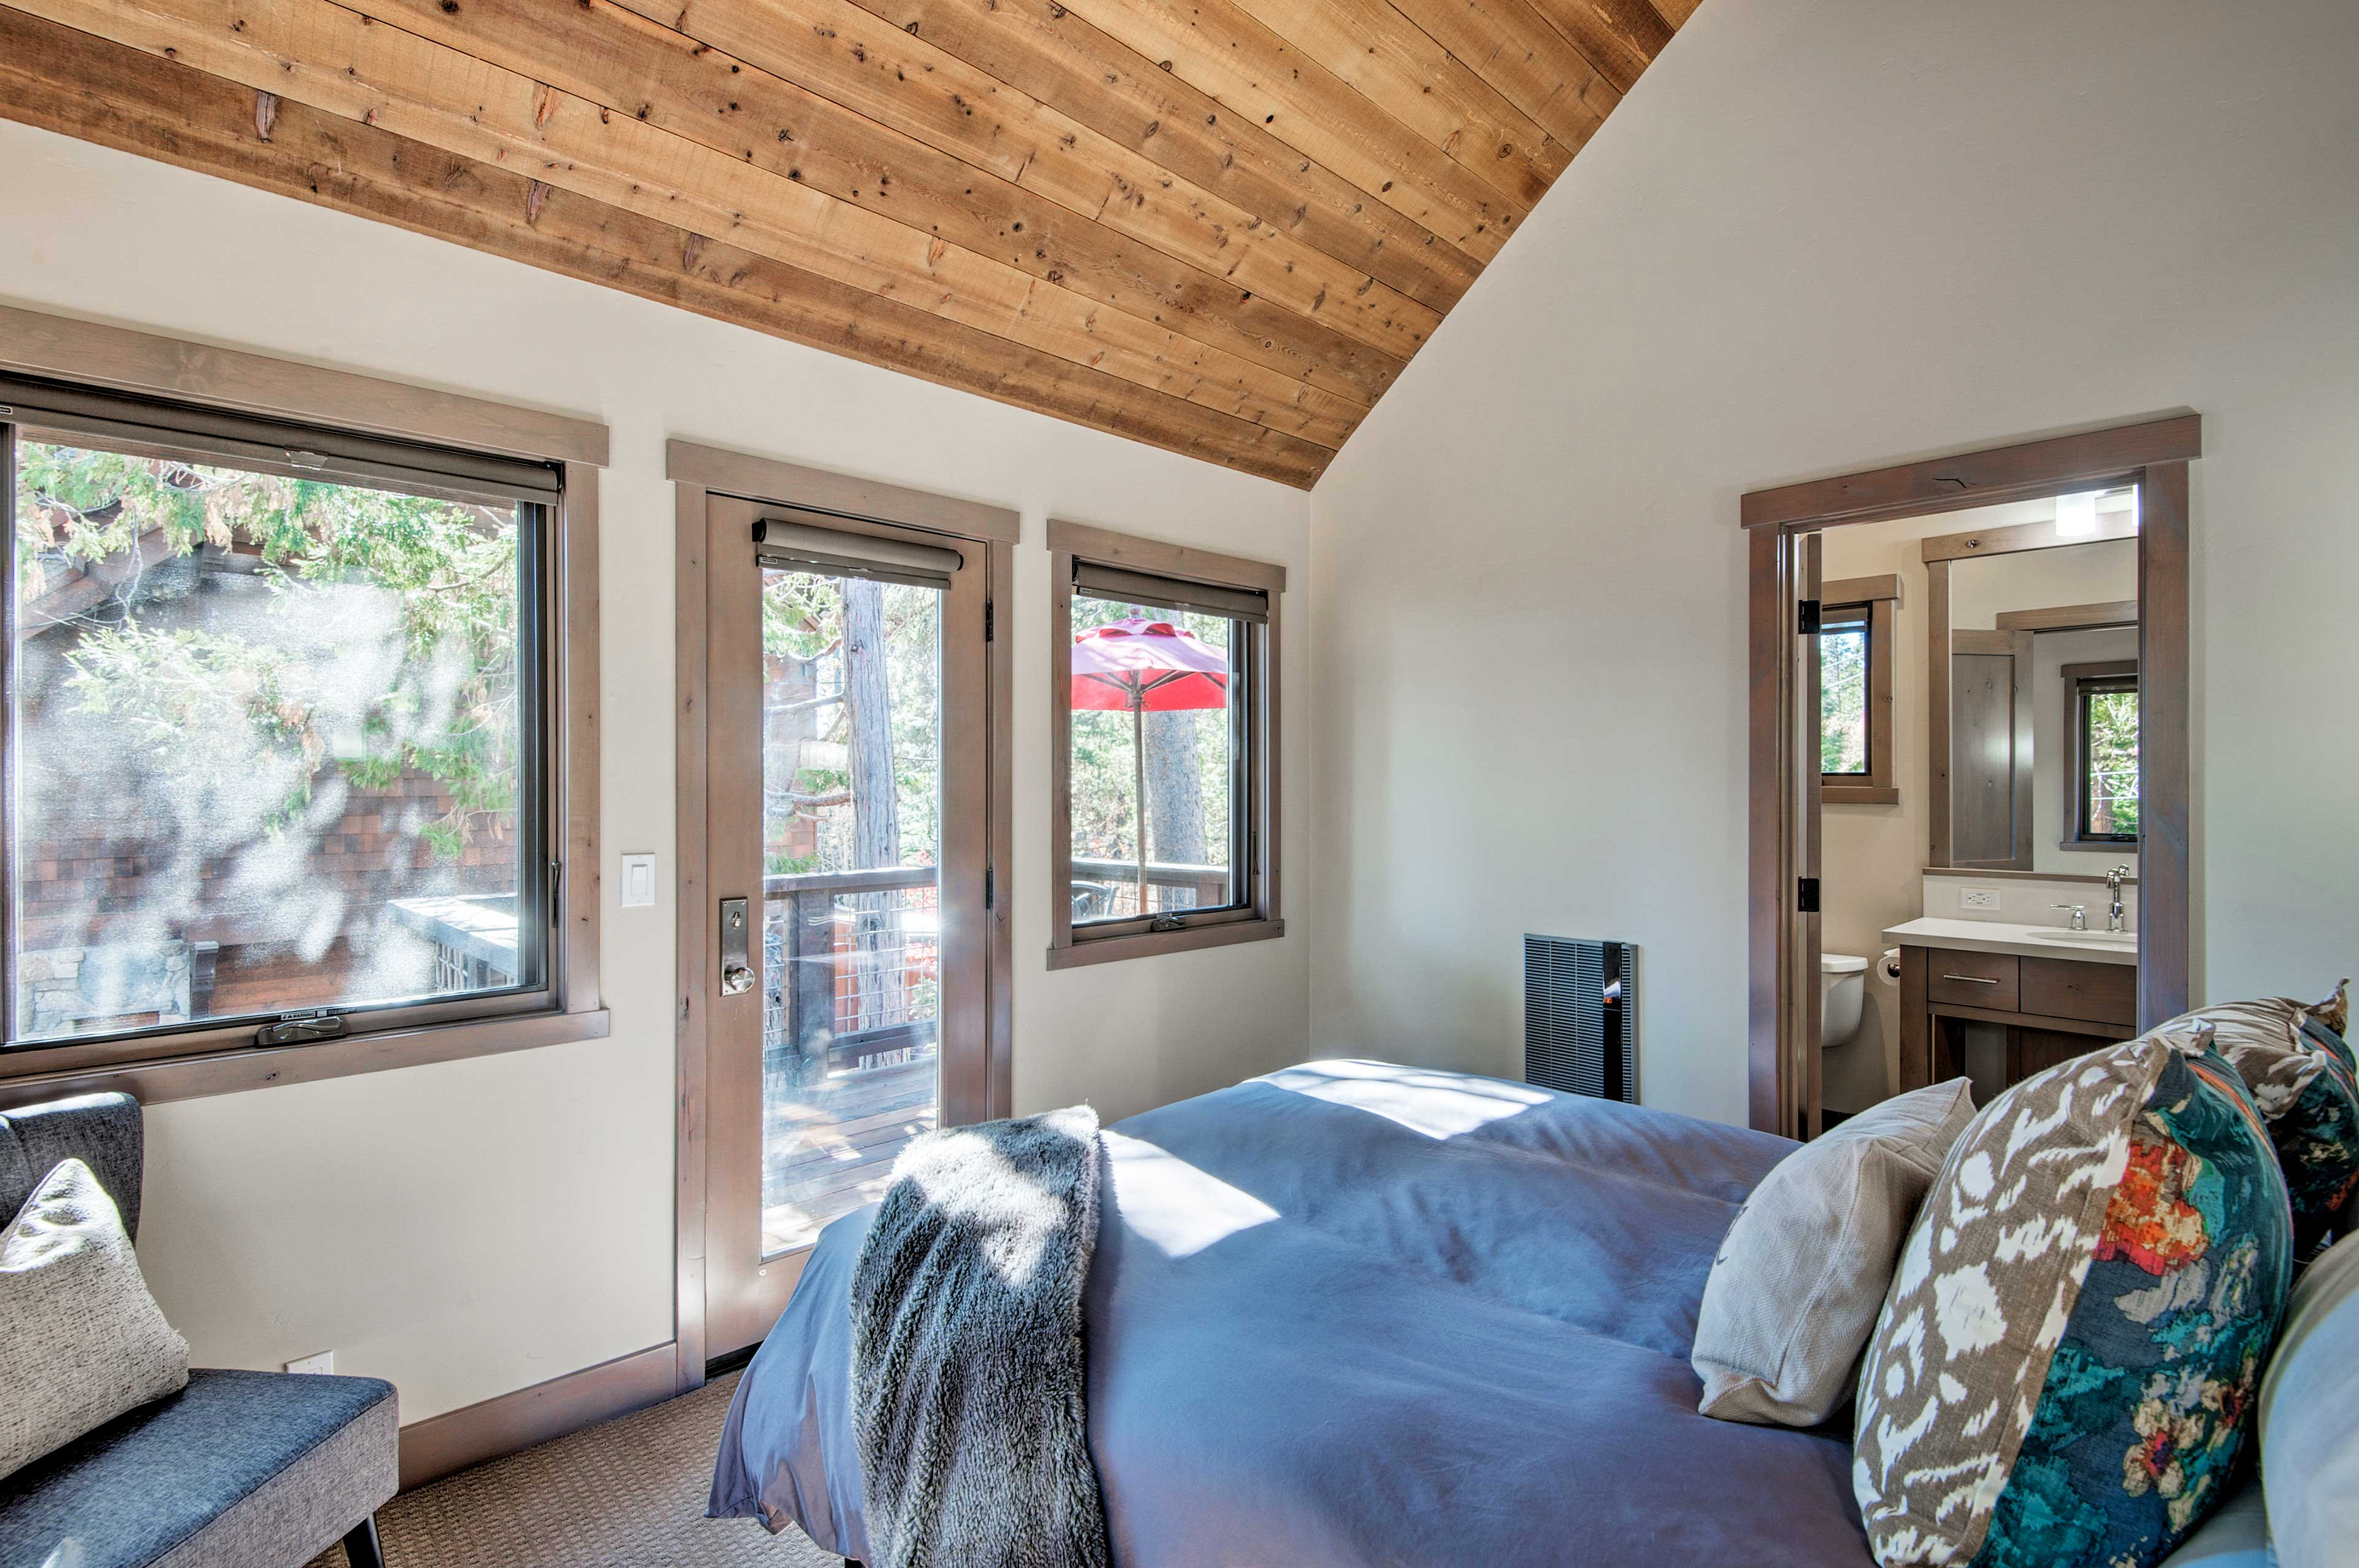 The second-story master bedroom overlooks the scenic property.